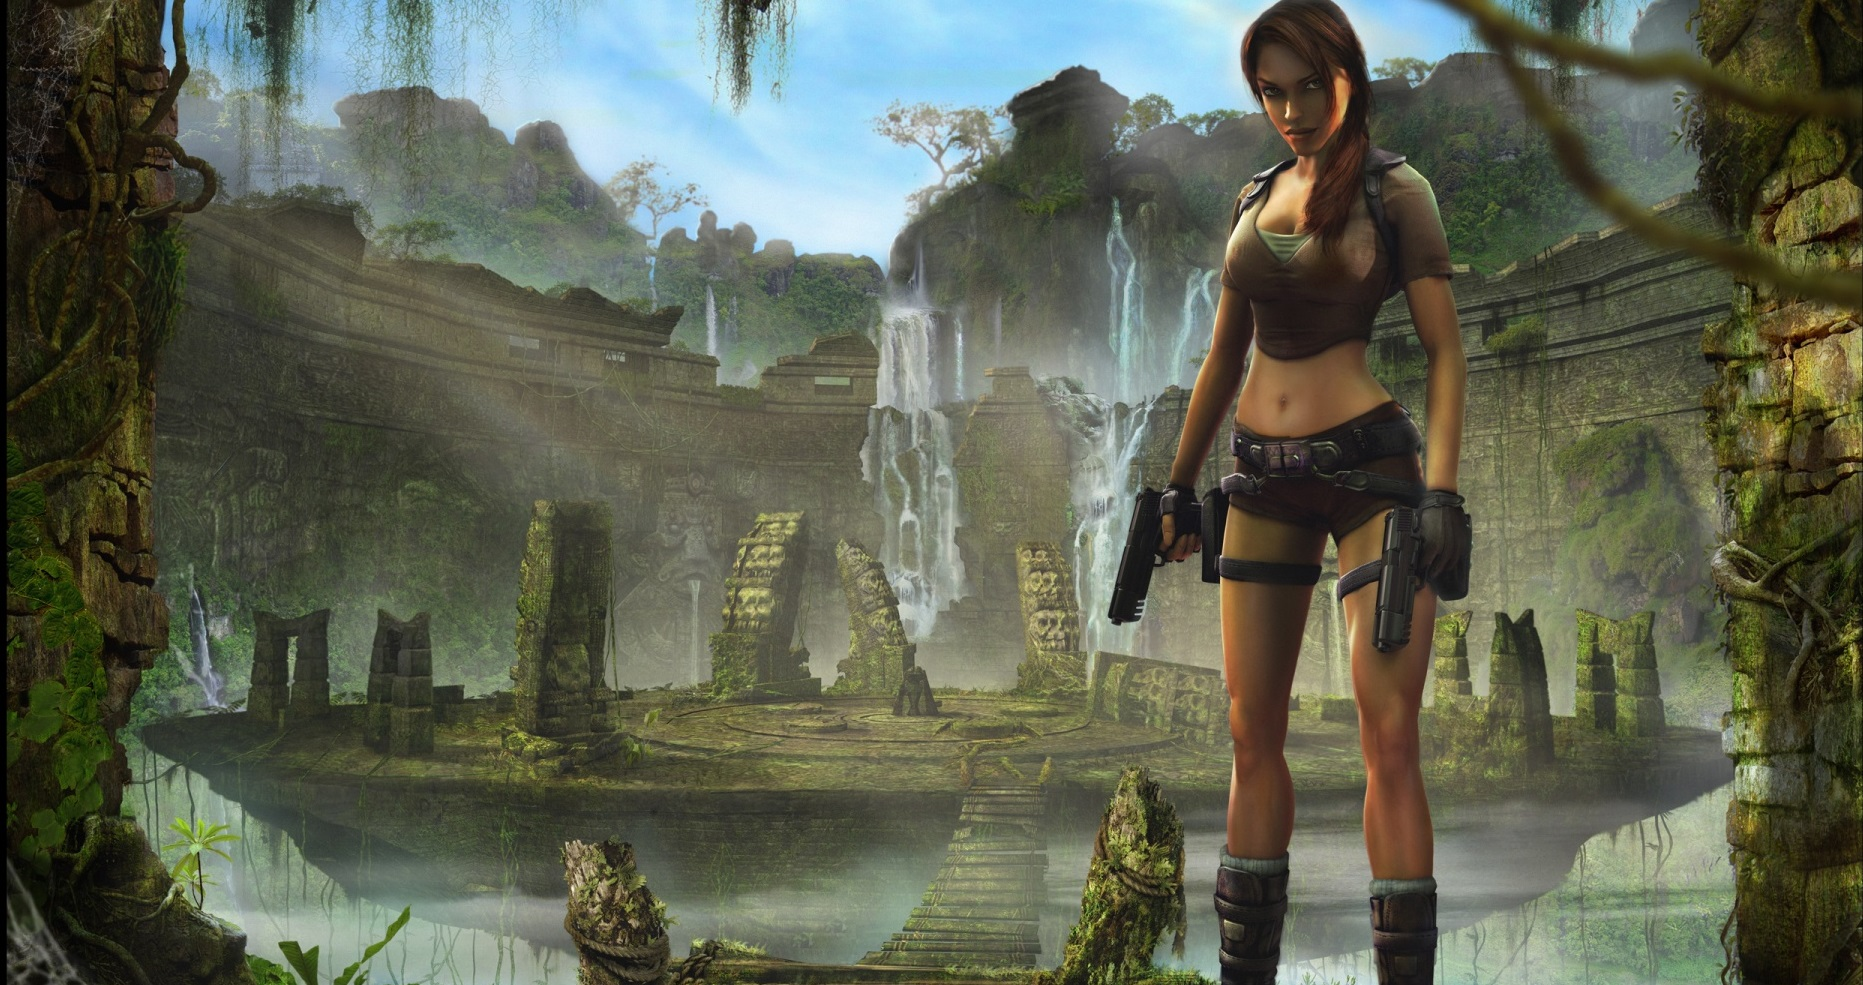 Tomb Raider Wallpapers Posted By Samantha Walker